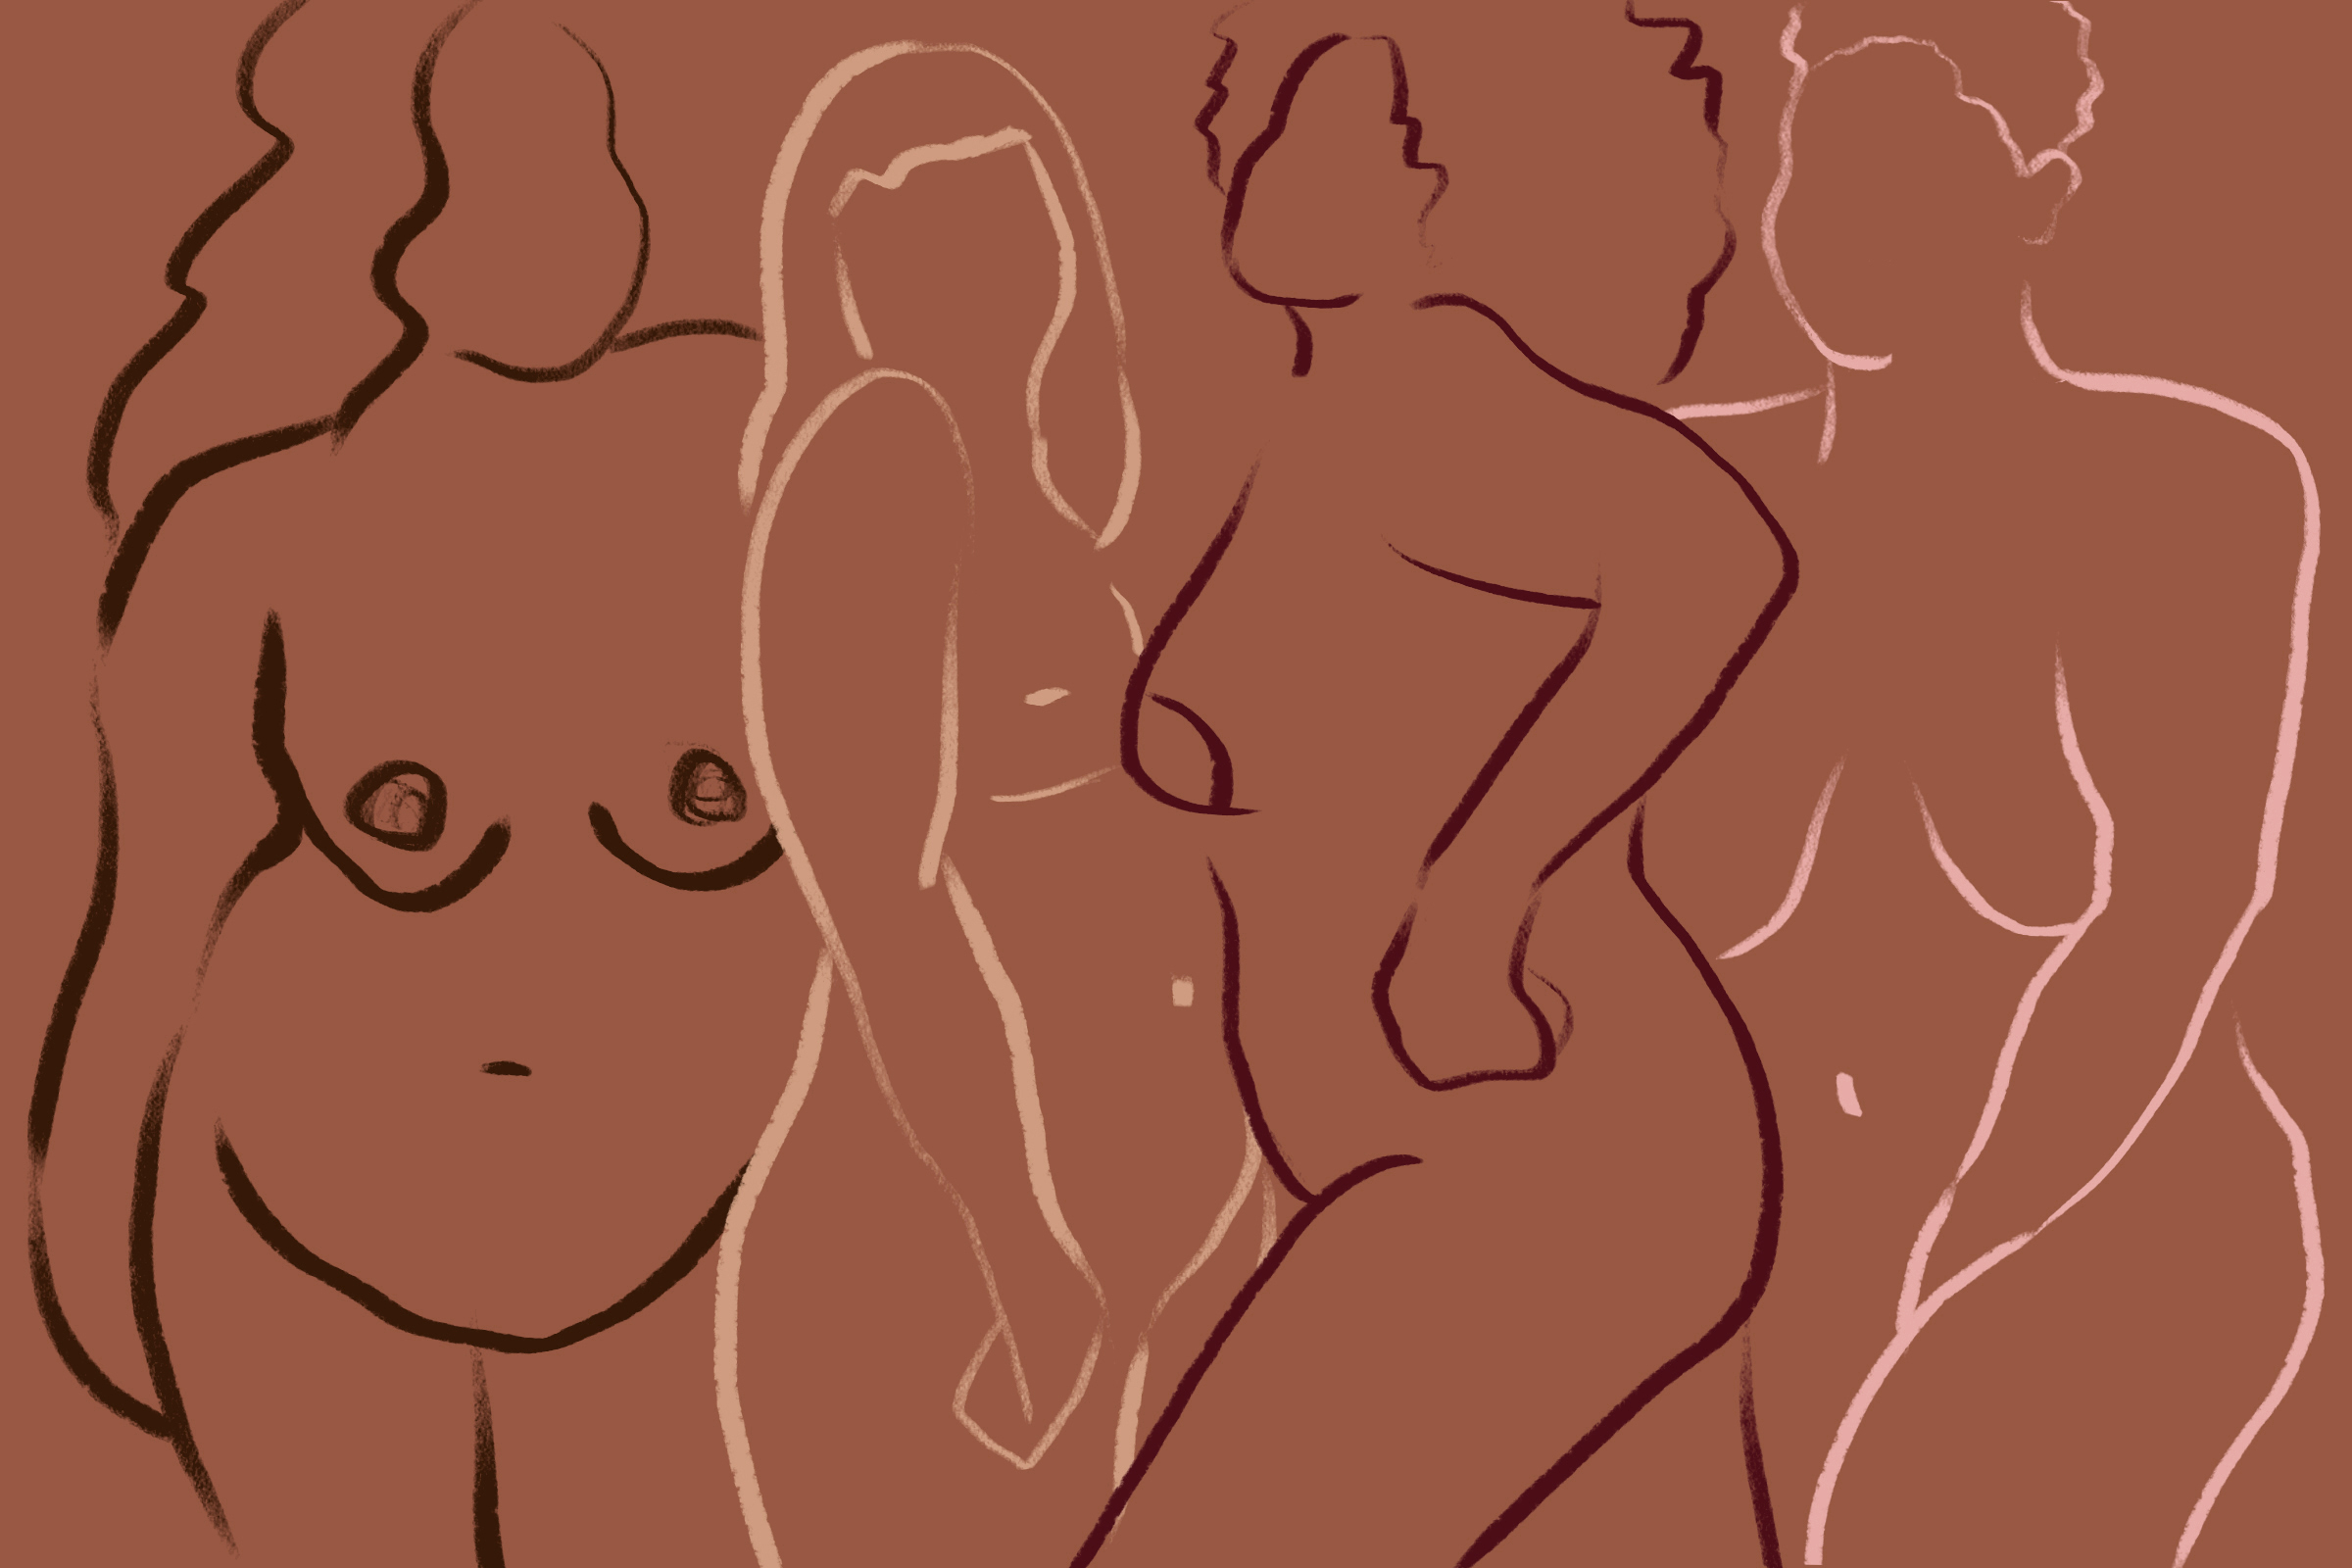 An illustration of a variety of bodies in neutral tones.